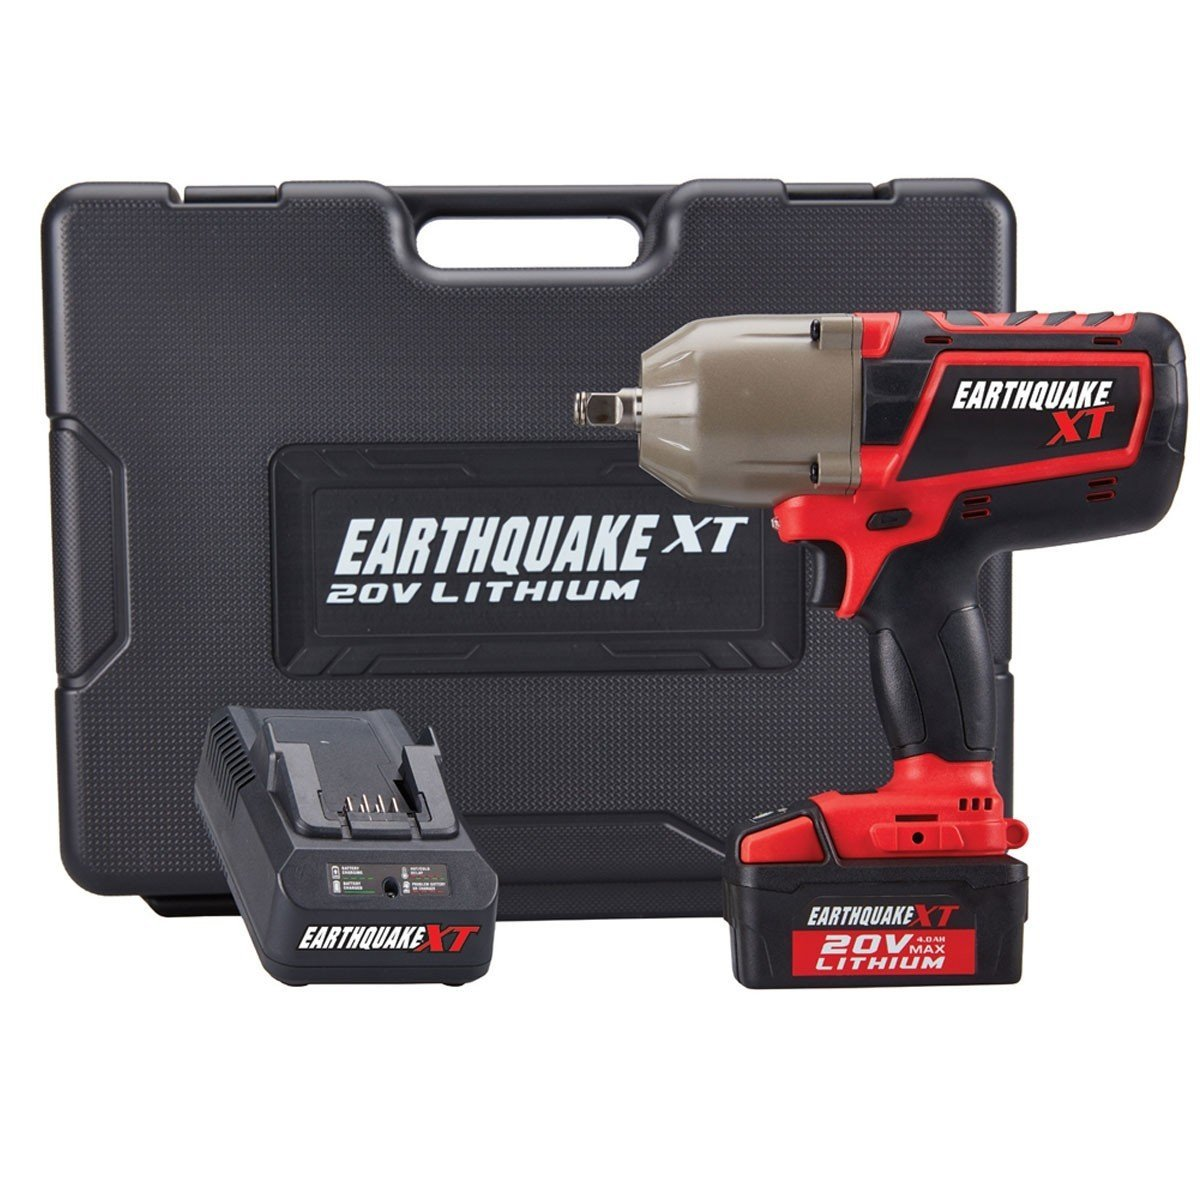 earthquake xt 20v cordless impact wrench review